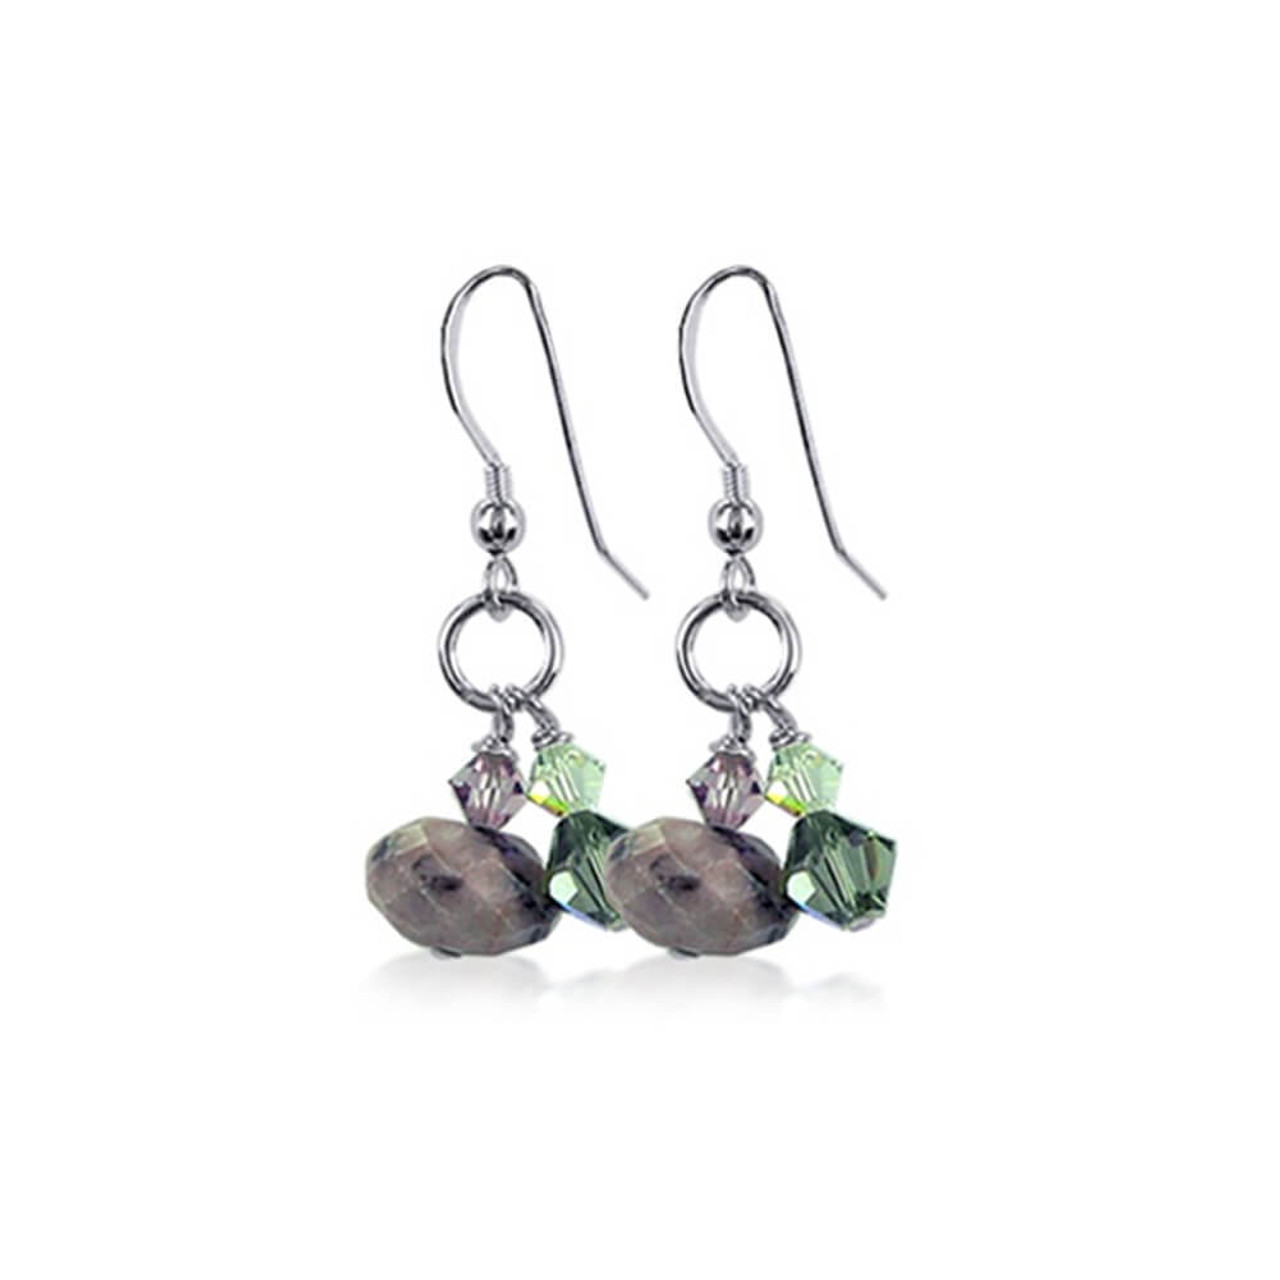 925 Silver Made with Swarovski Crystal and Natural Stone Dangle Earrings